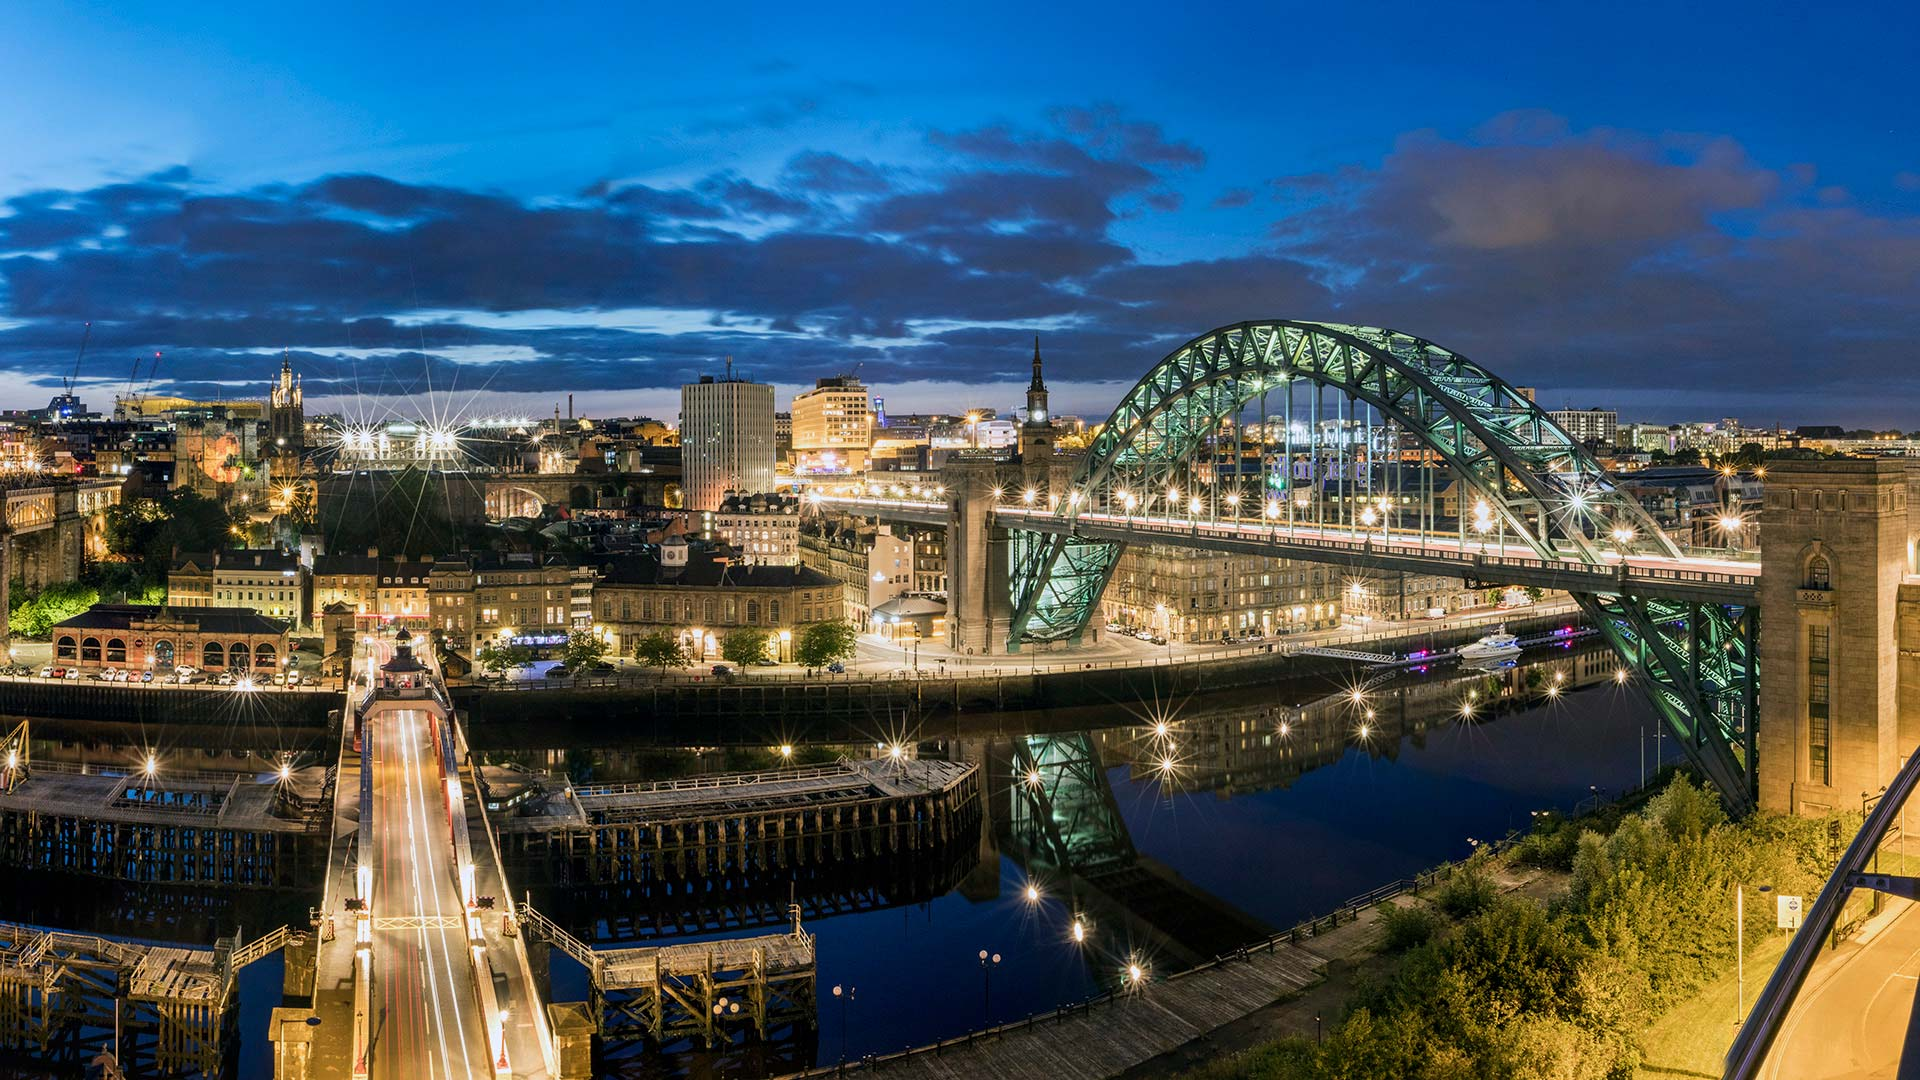 Panorama to illustrate dating in new castle upon tyne